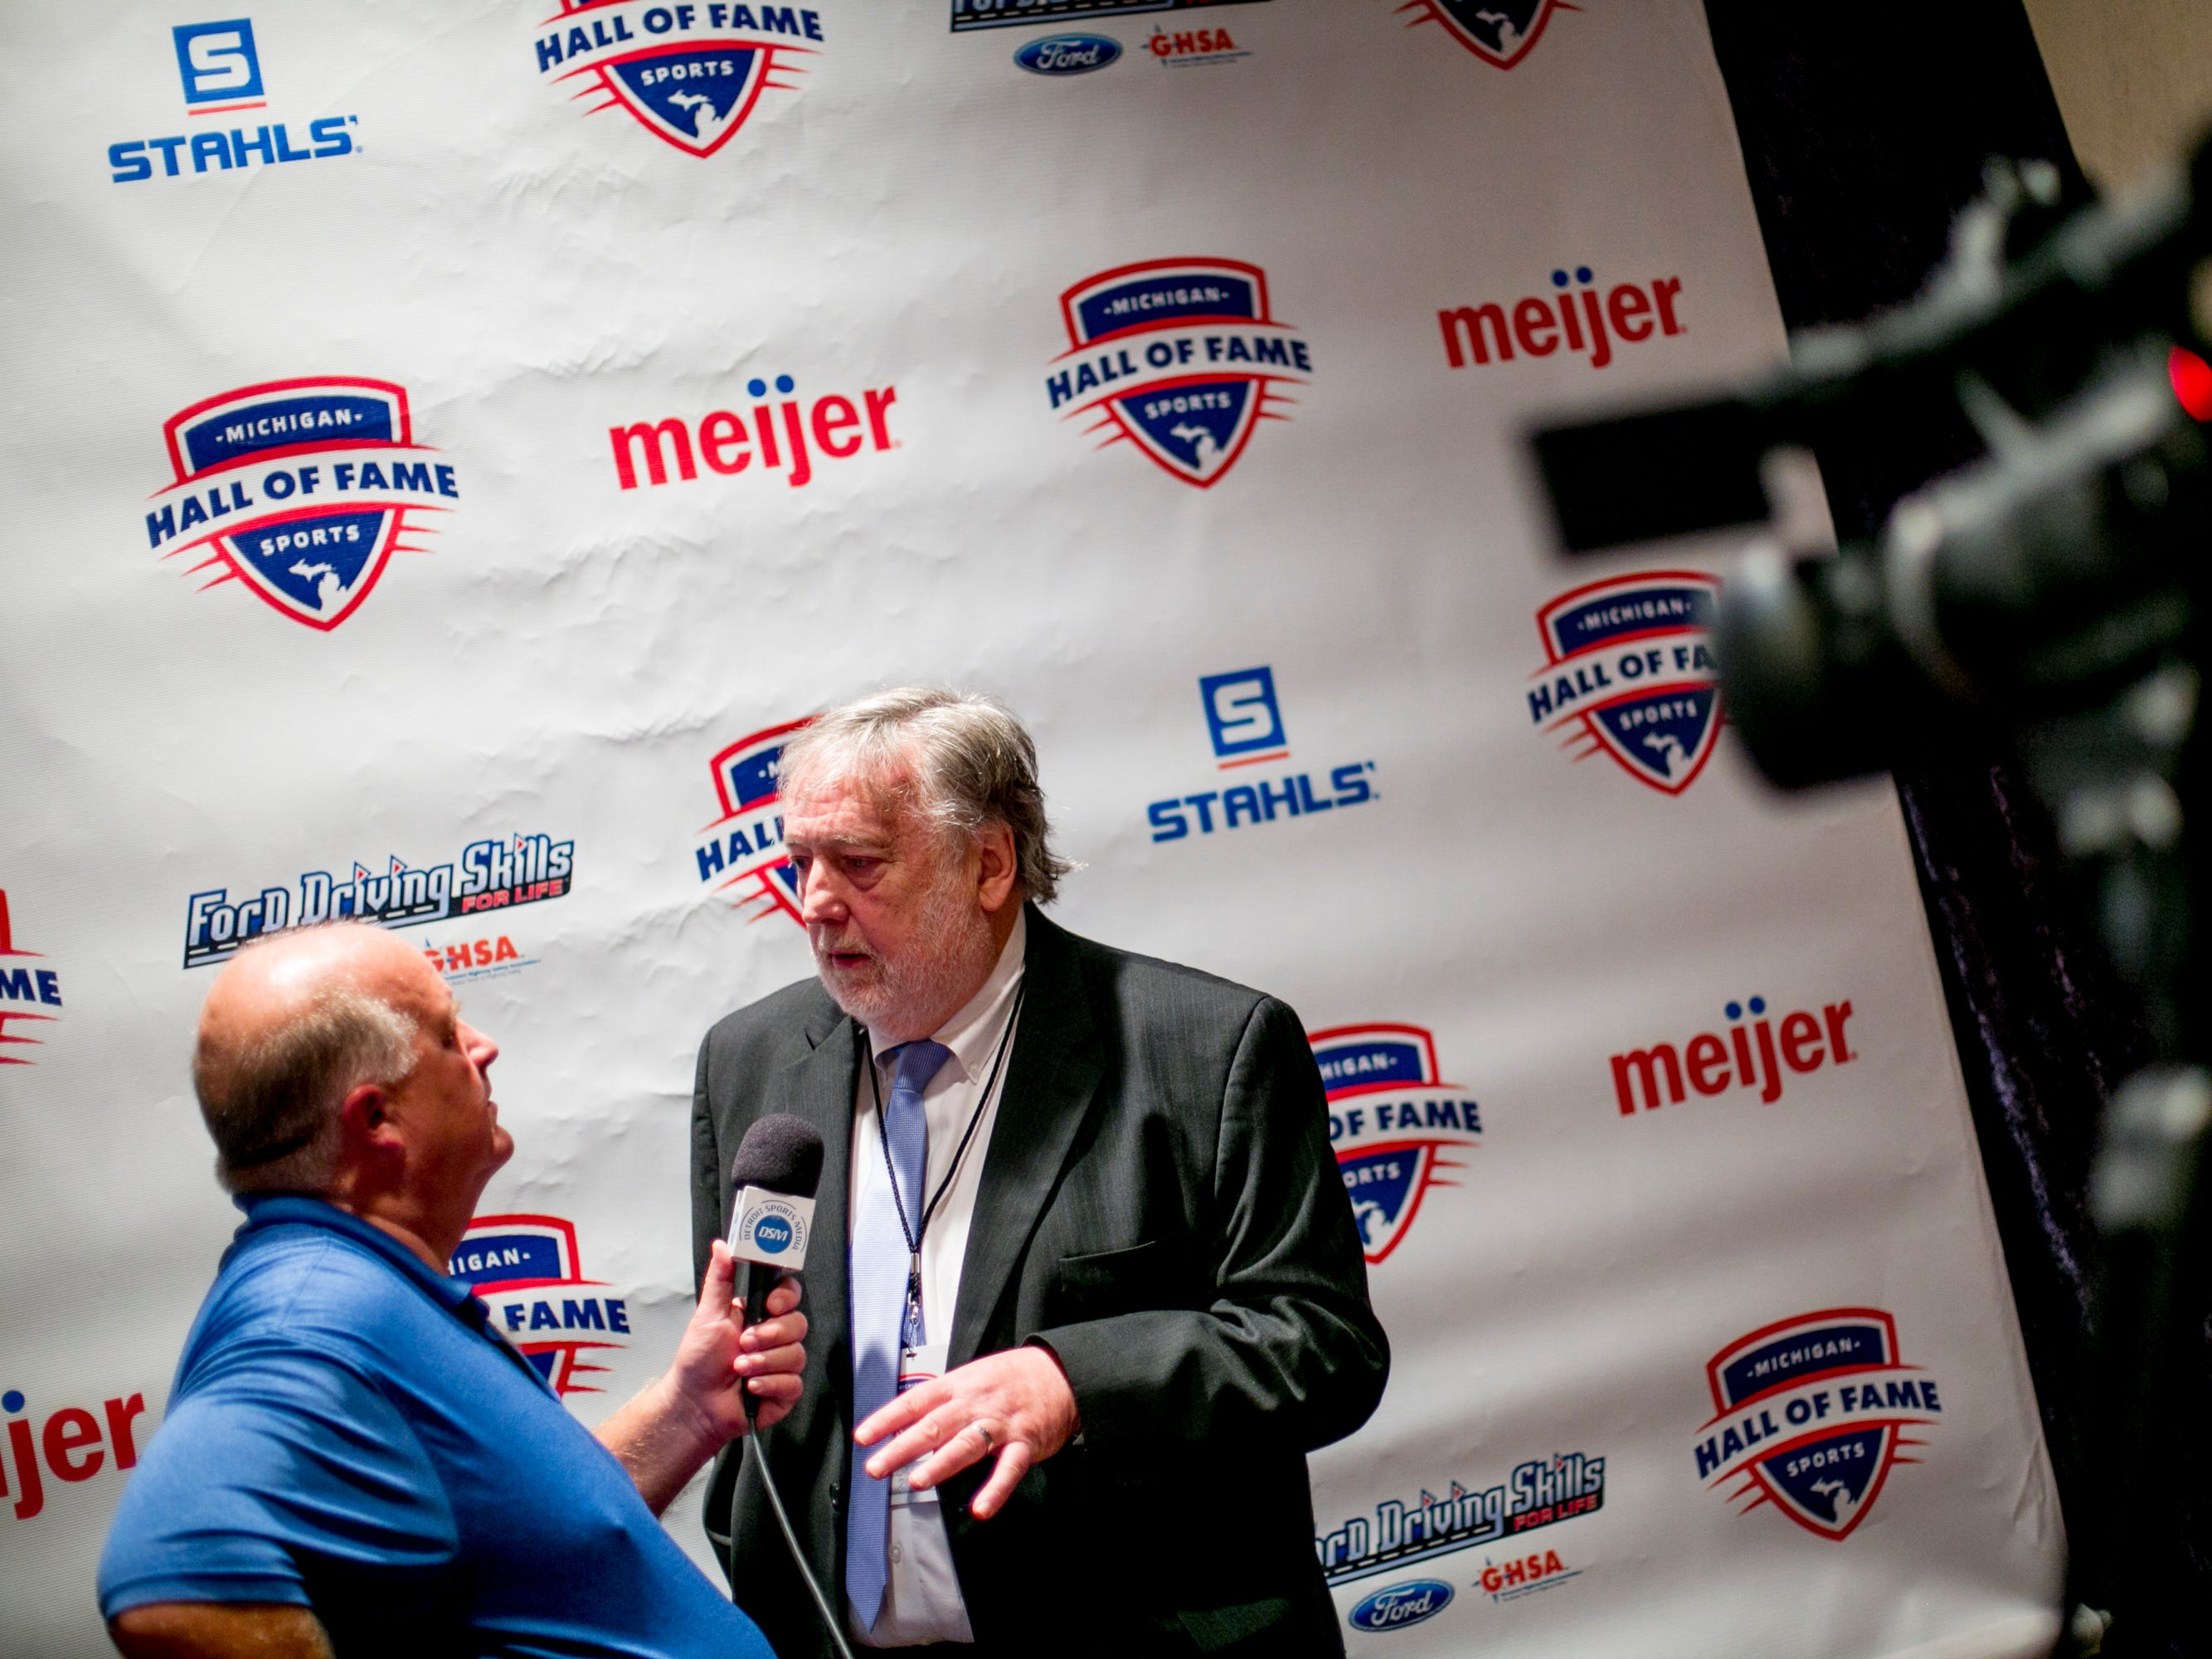 Sports journalis Mick McCabe gives an interview before the ceremony.